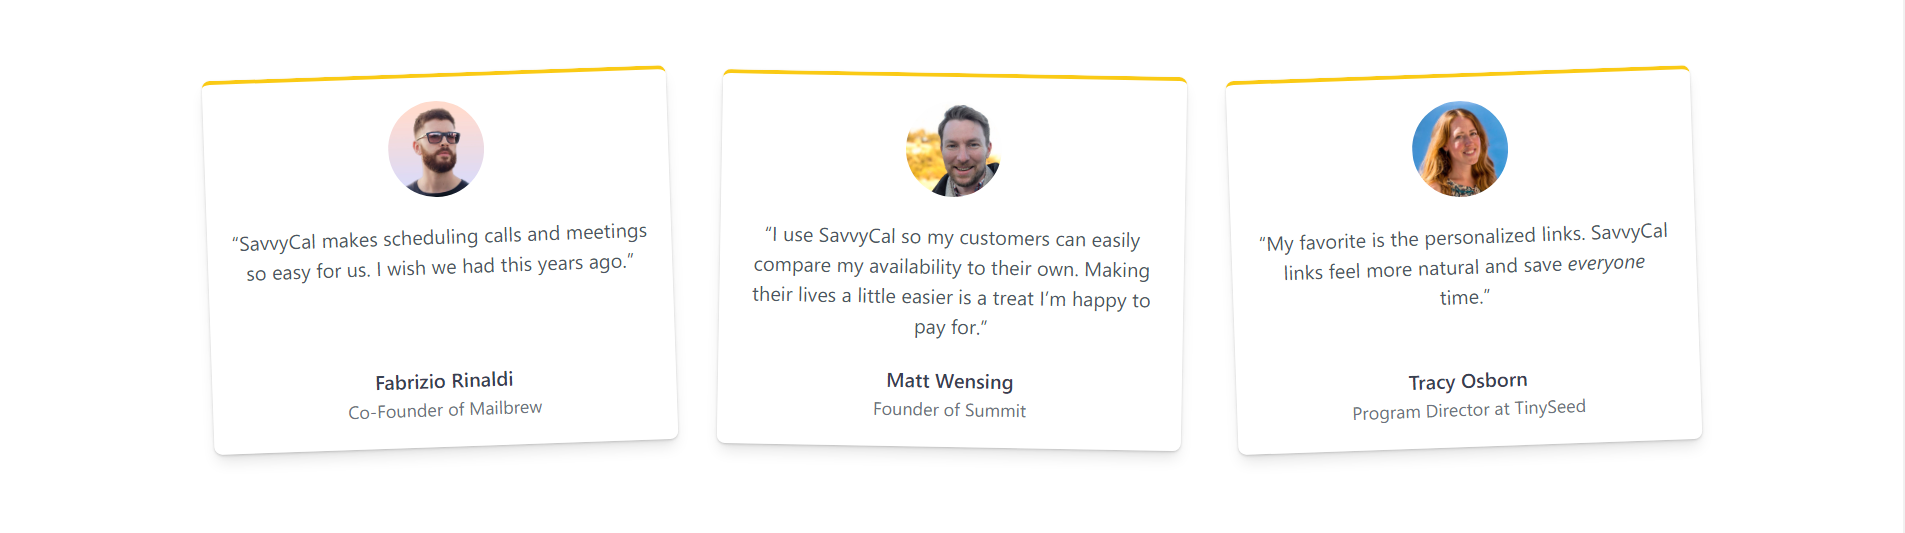 Derrick shows 3 different sections of social proof on SavvyCal